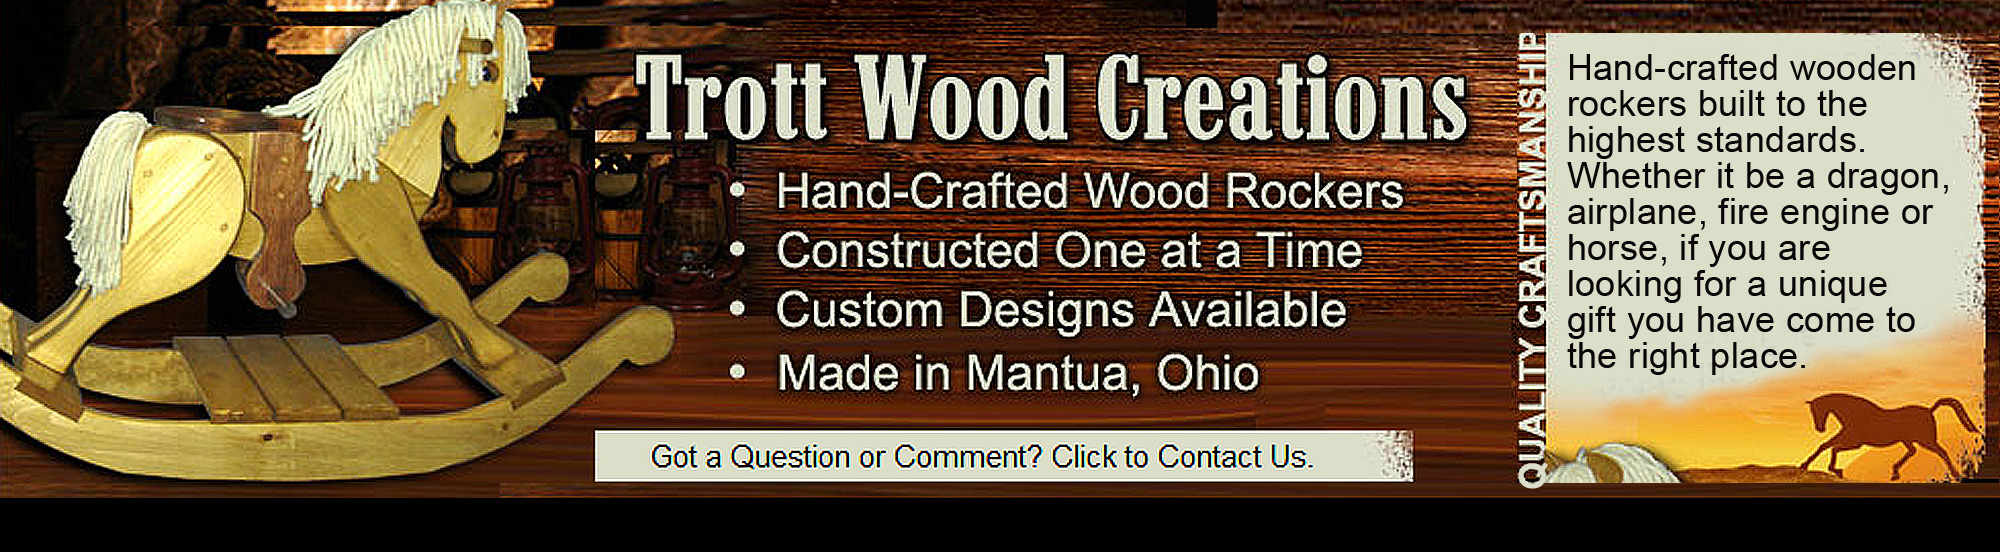 Trottwood Creations